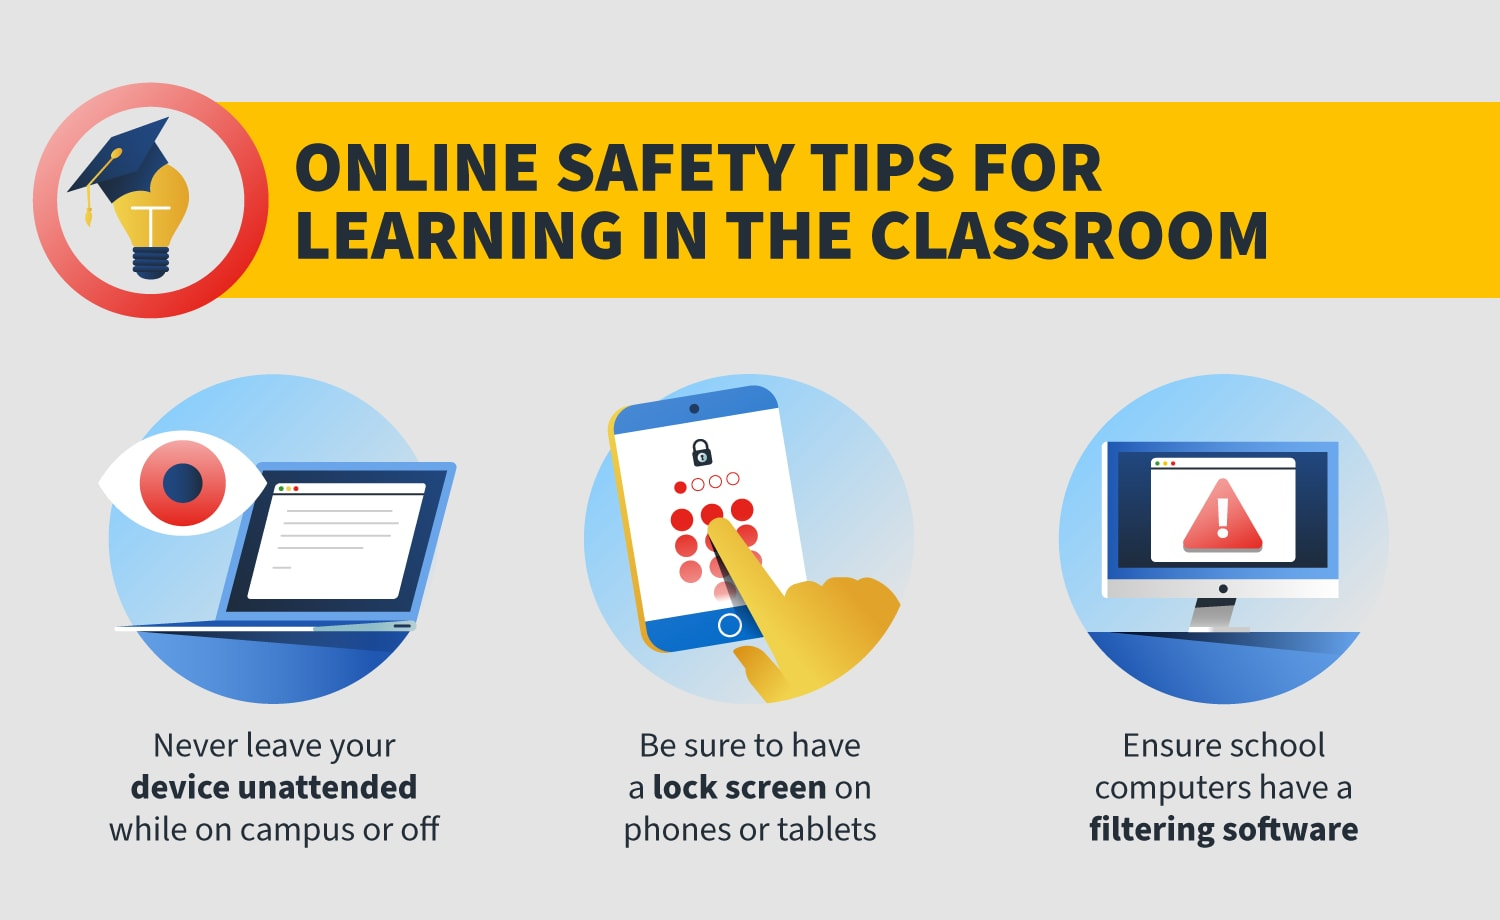 infographic on online learning safety tips for the classroom